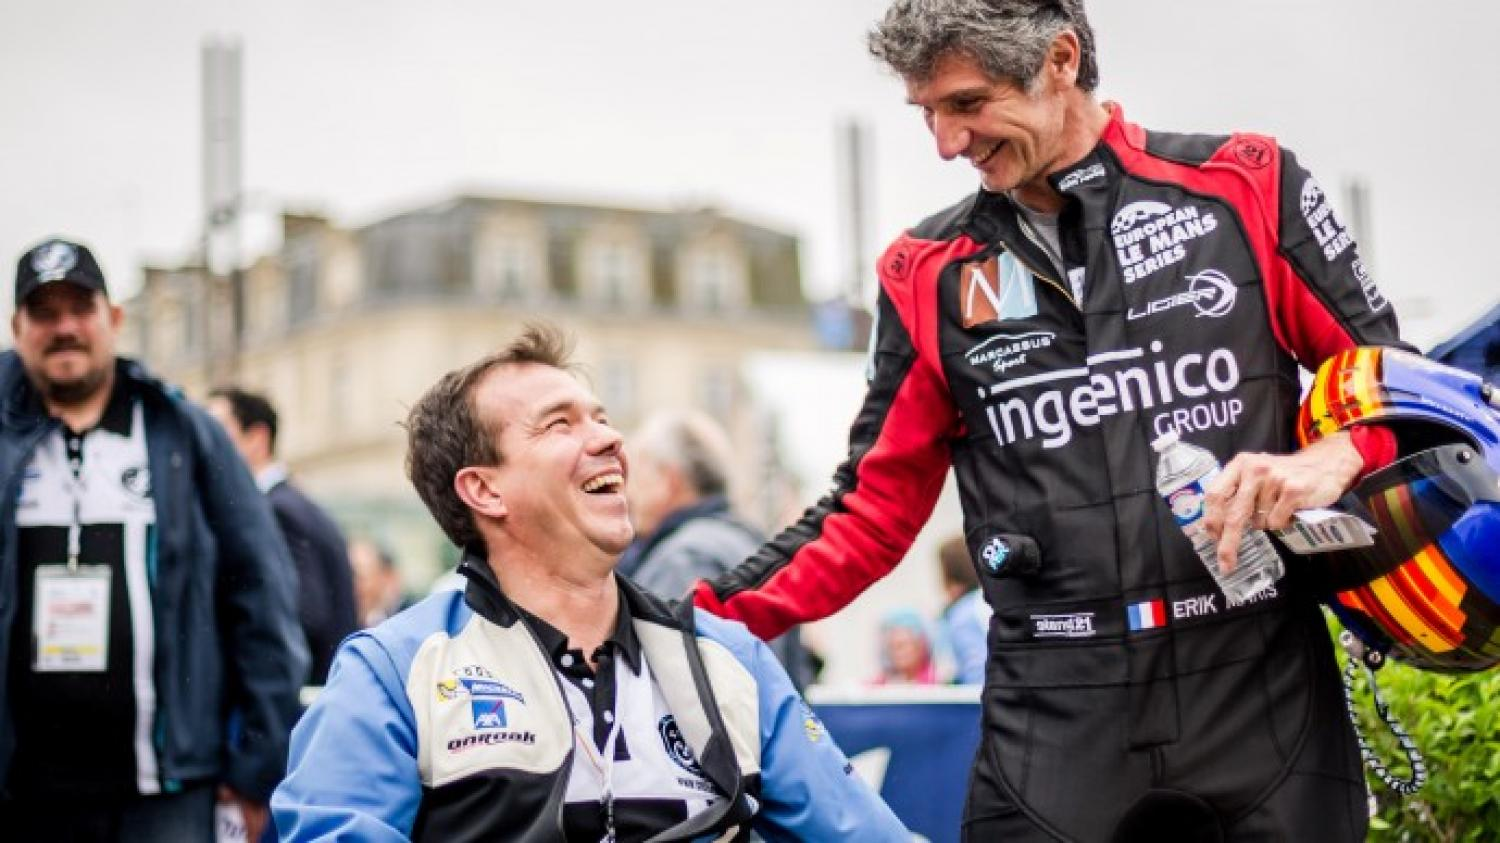 Frédéric Sausset revels in his success at the 24 Hours of Le Mans